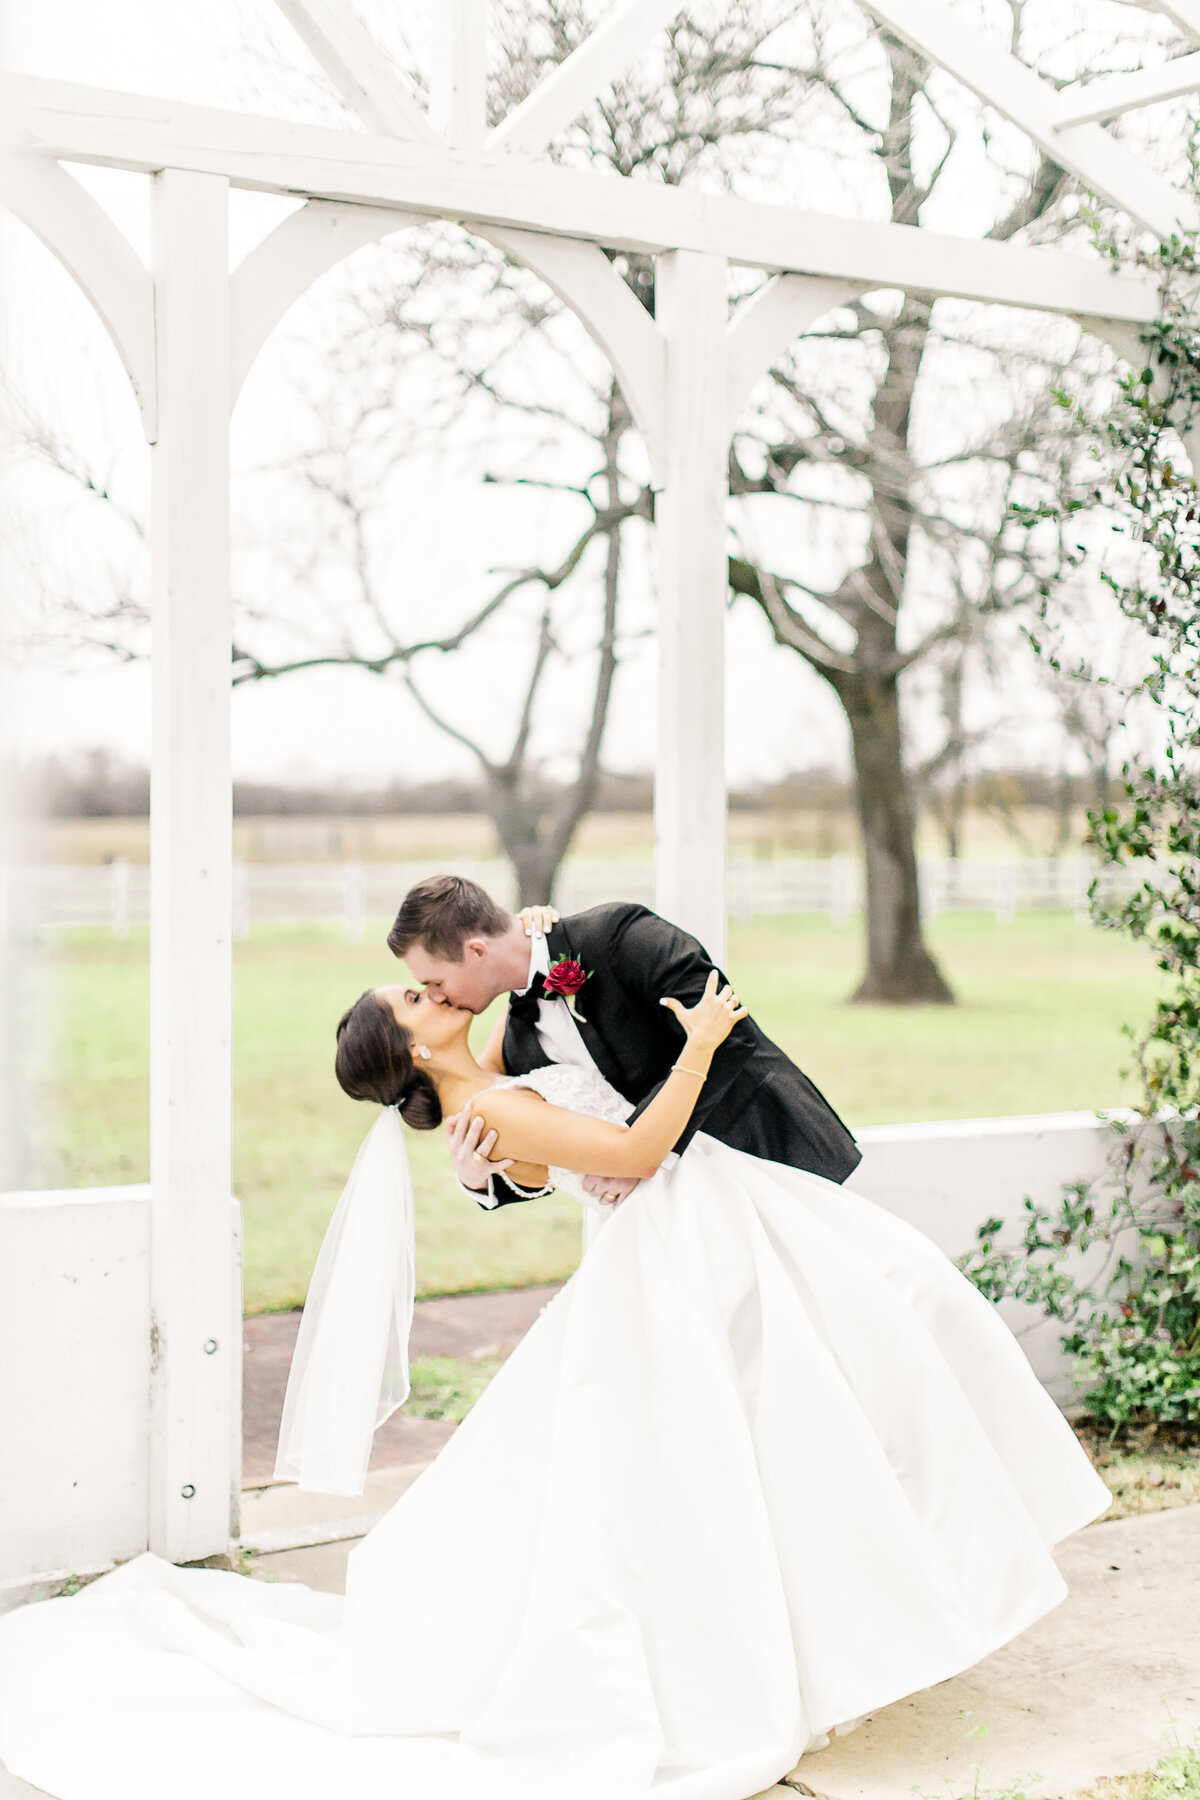 A bride and groom kissing on their wedding day underneath the Greenhouse Arbor at the Grand Texana's Wedding venue